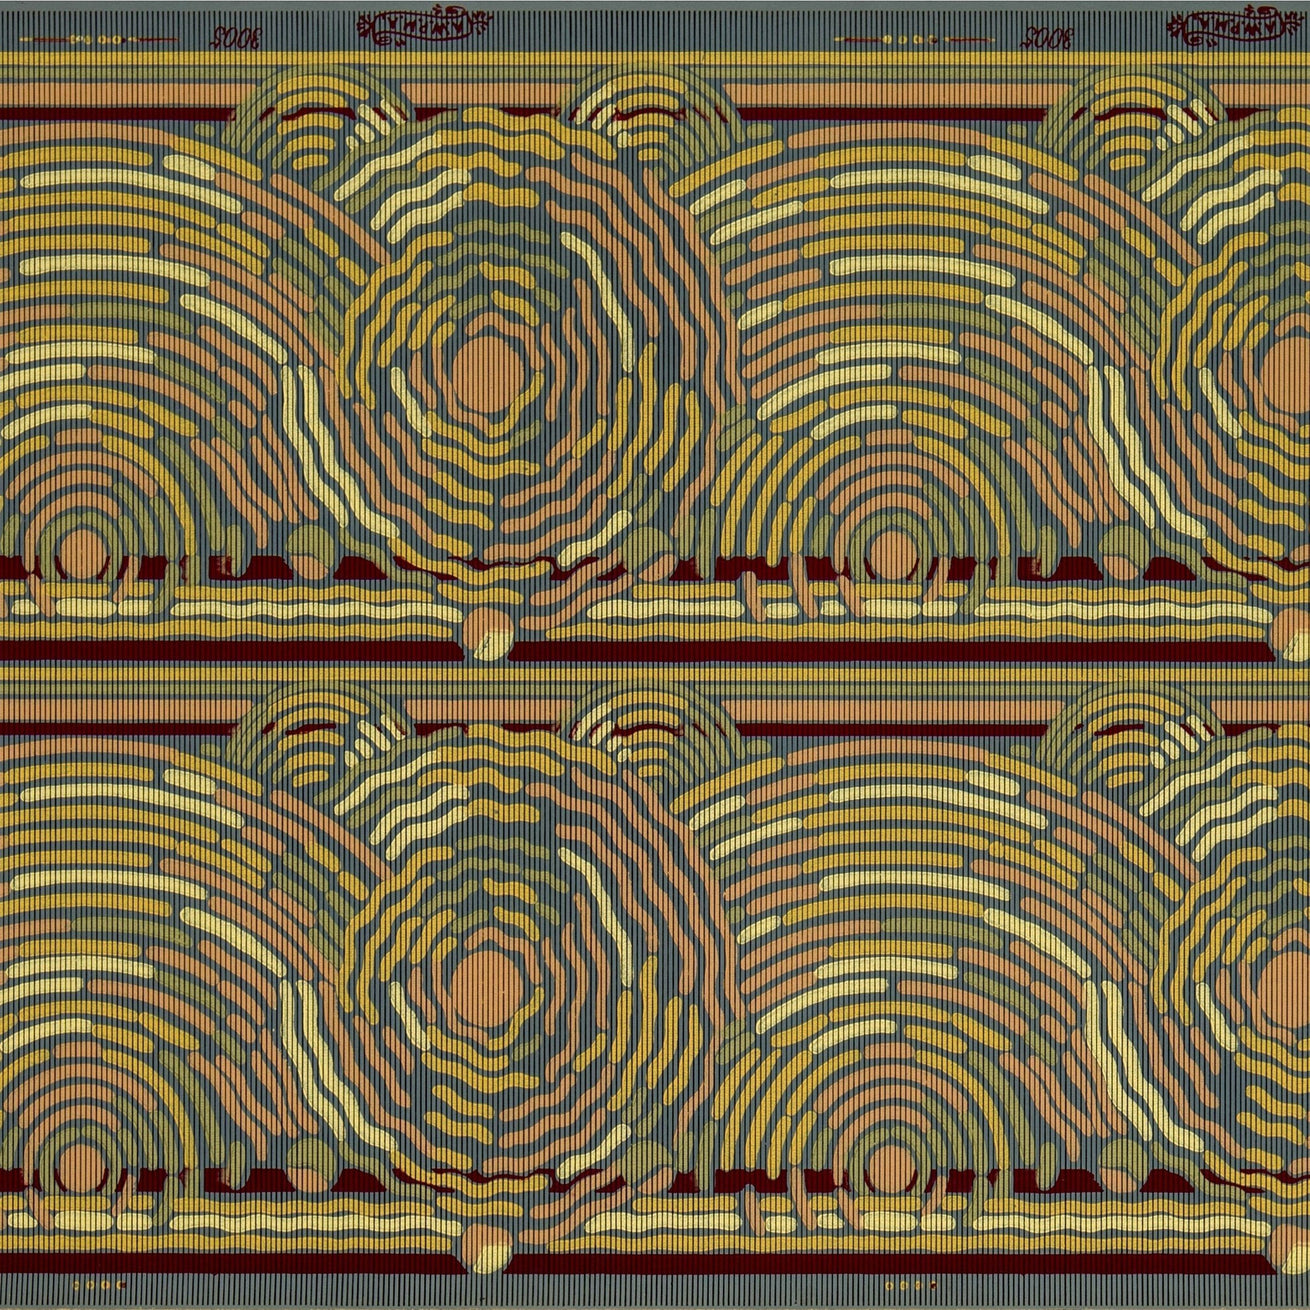 "9"" Swirling Border of Concentric Circles - Antique Wallpaper Remnant"